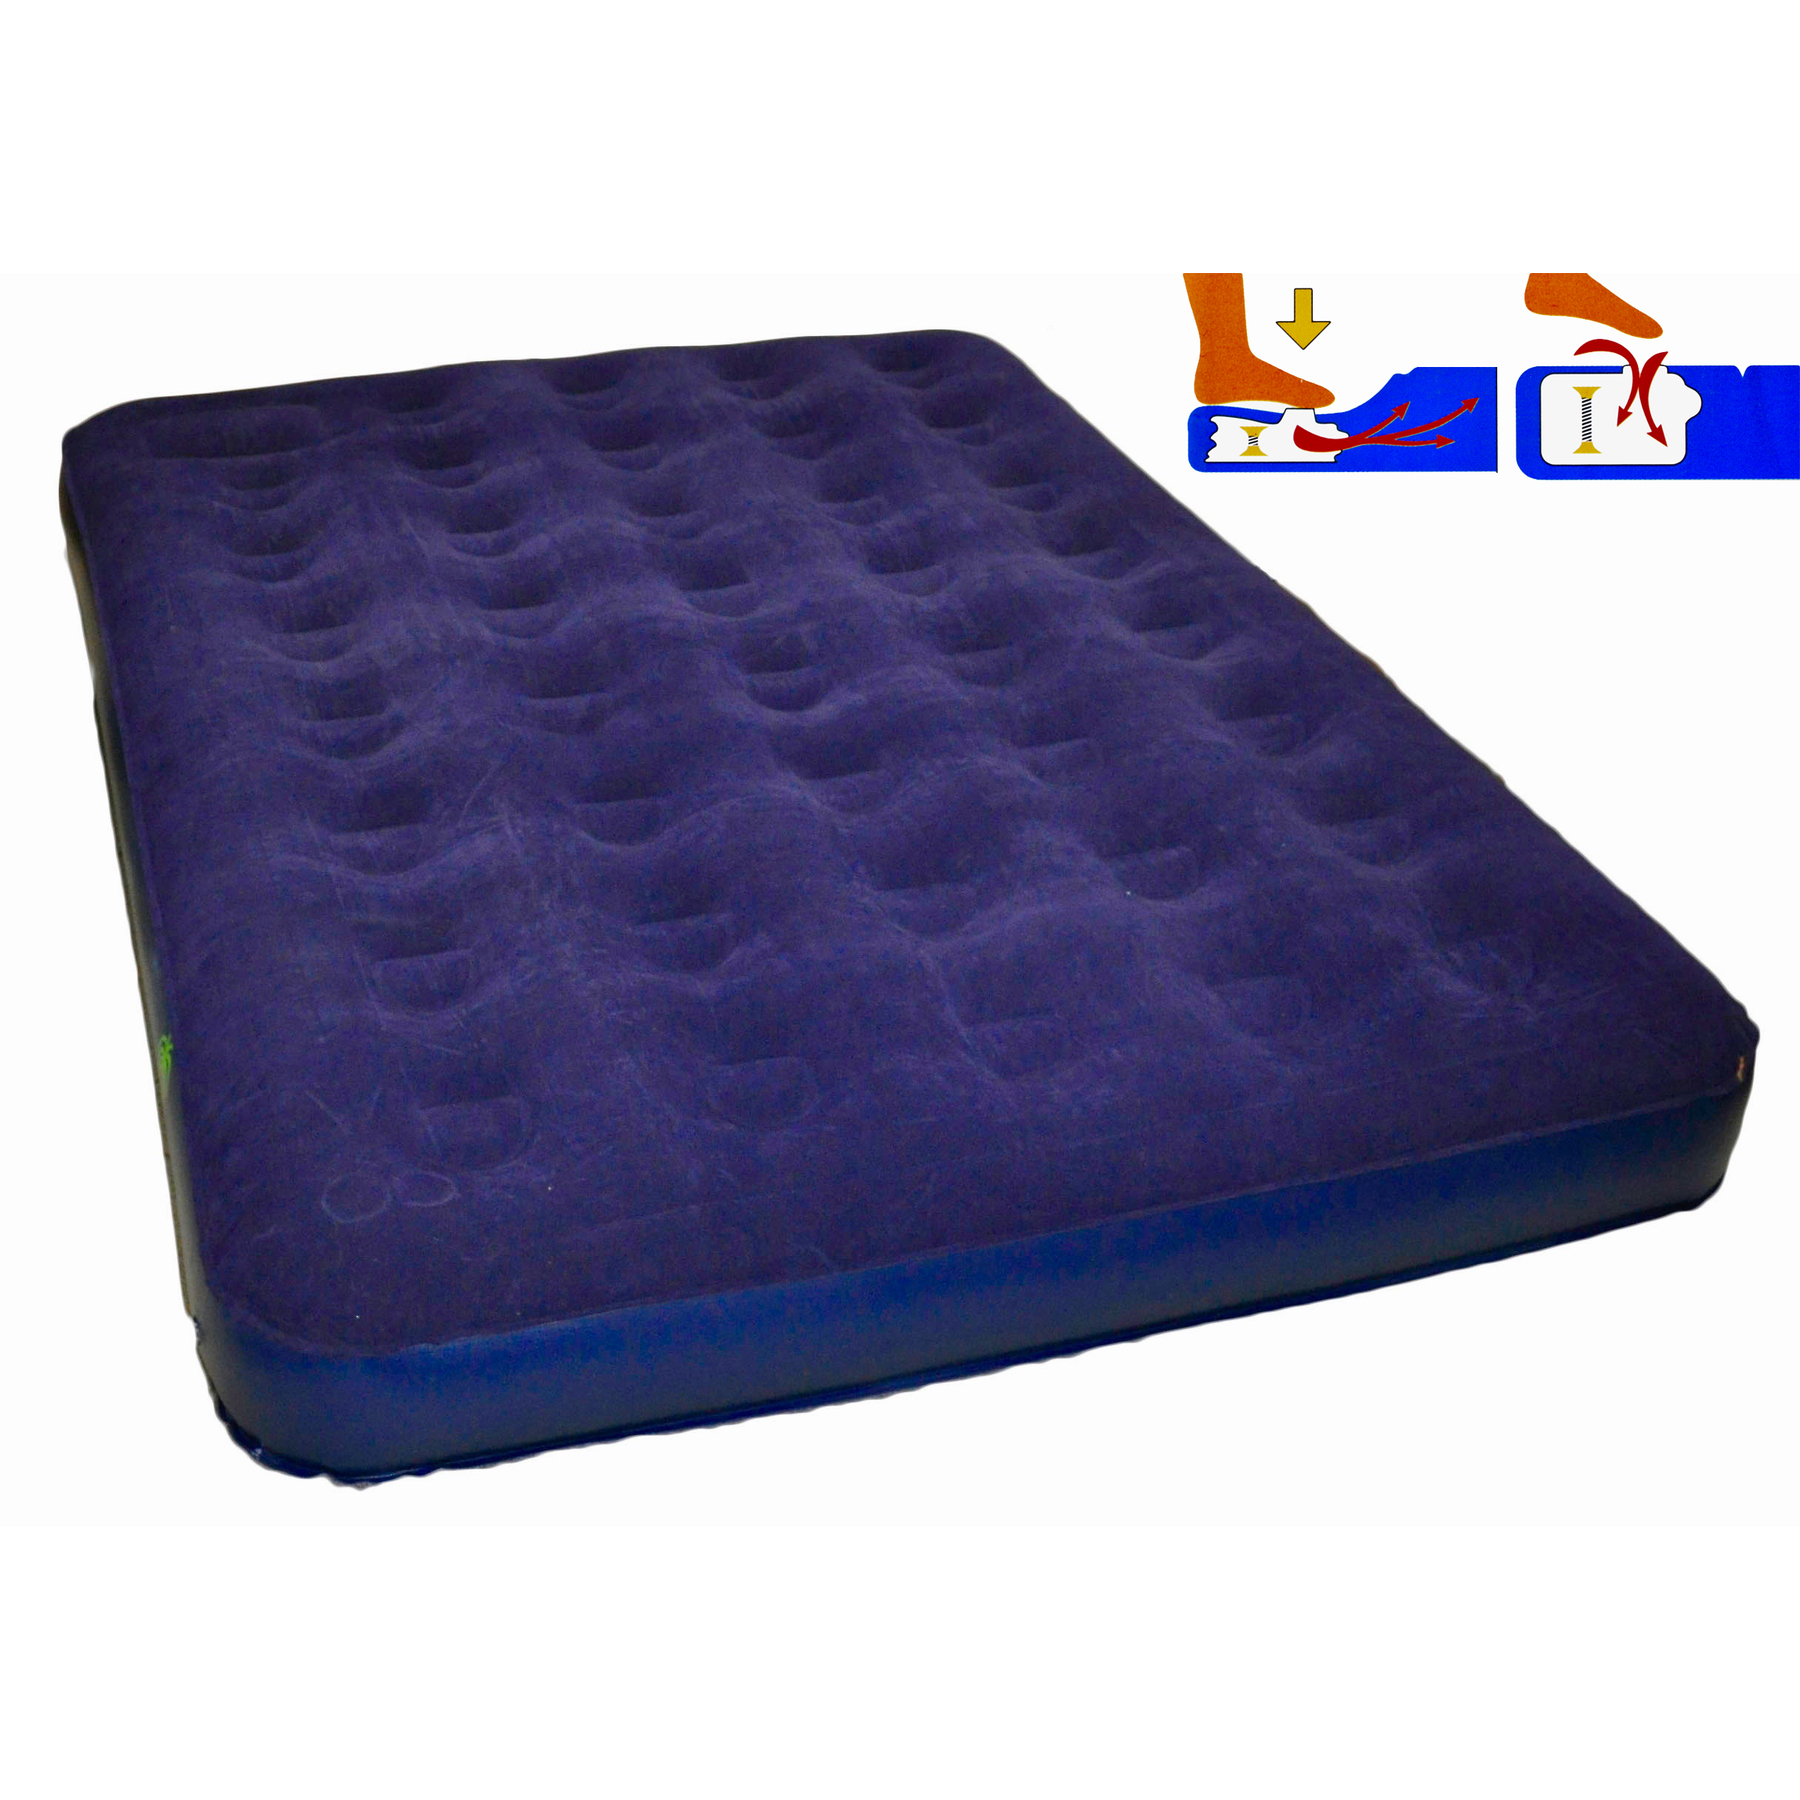 Inflatable Bed-mattress 2 Bedroom With Pump Big Clearance Sale